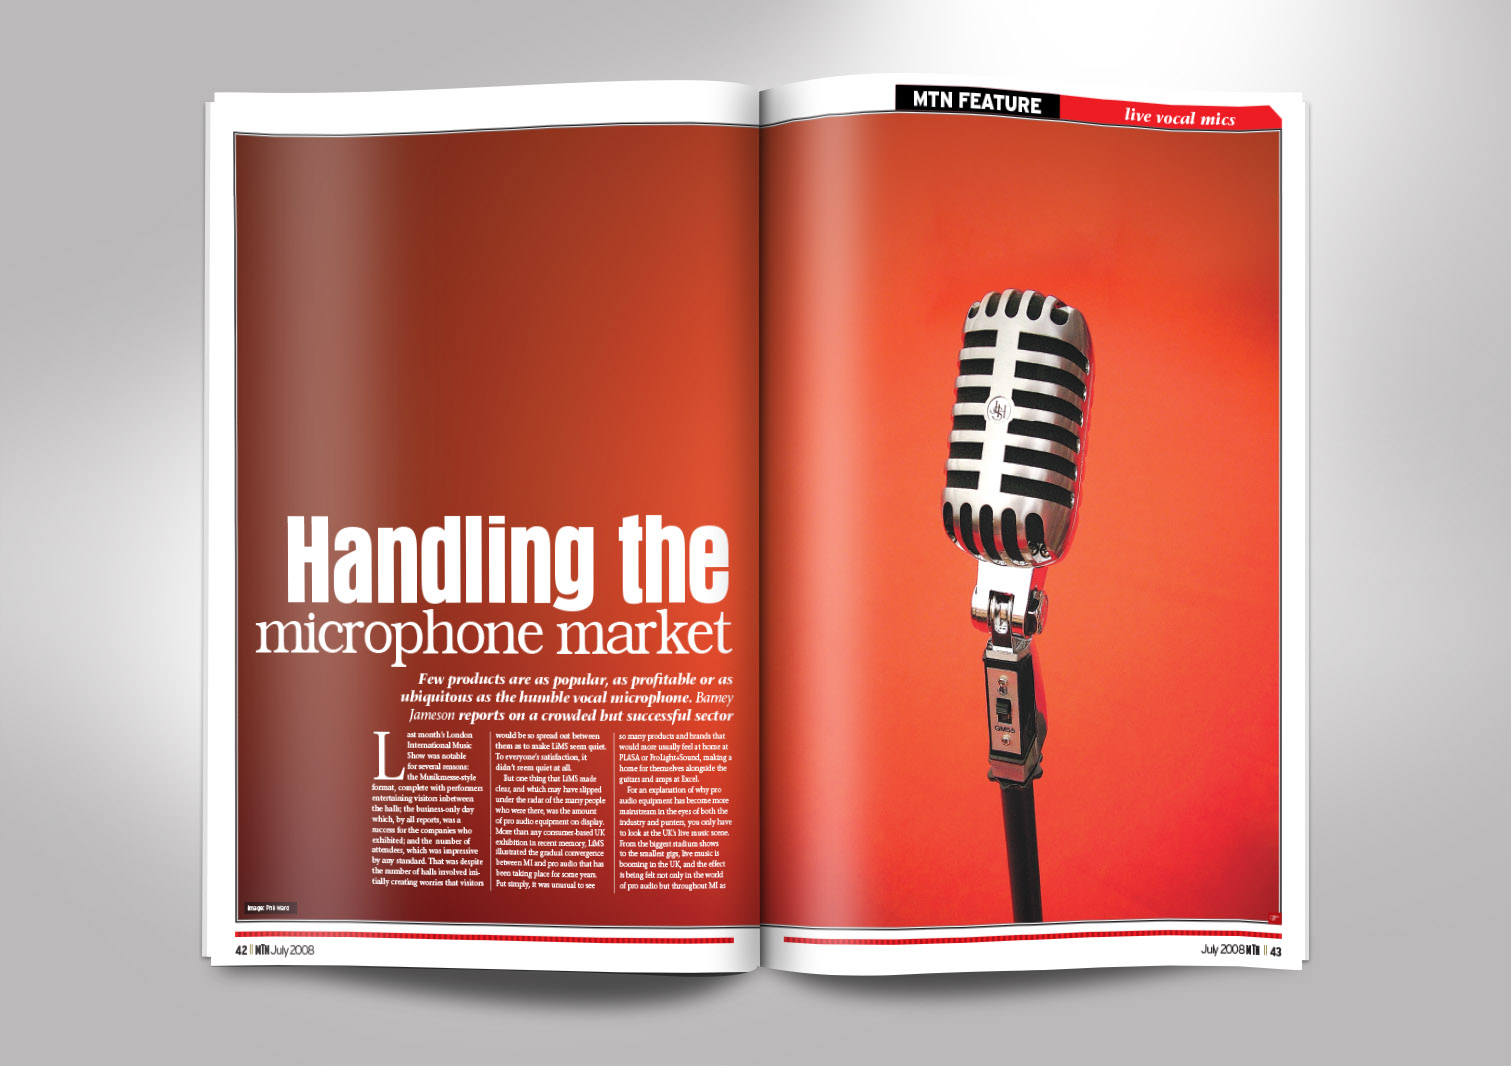 Music Trade News Magazine Inside Pages 4 and 5